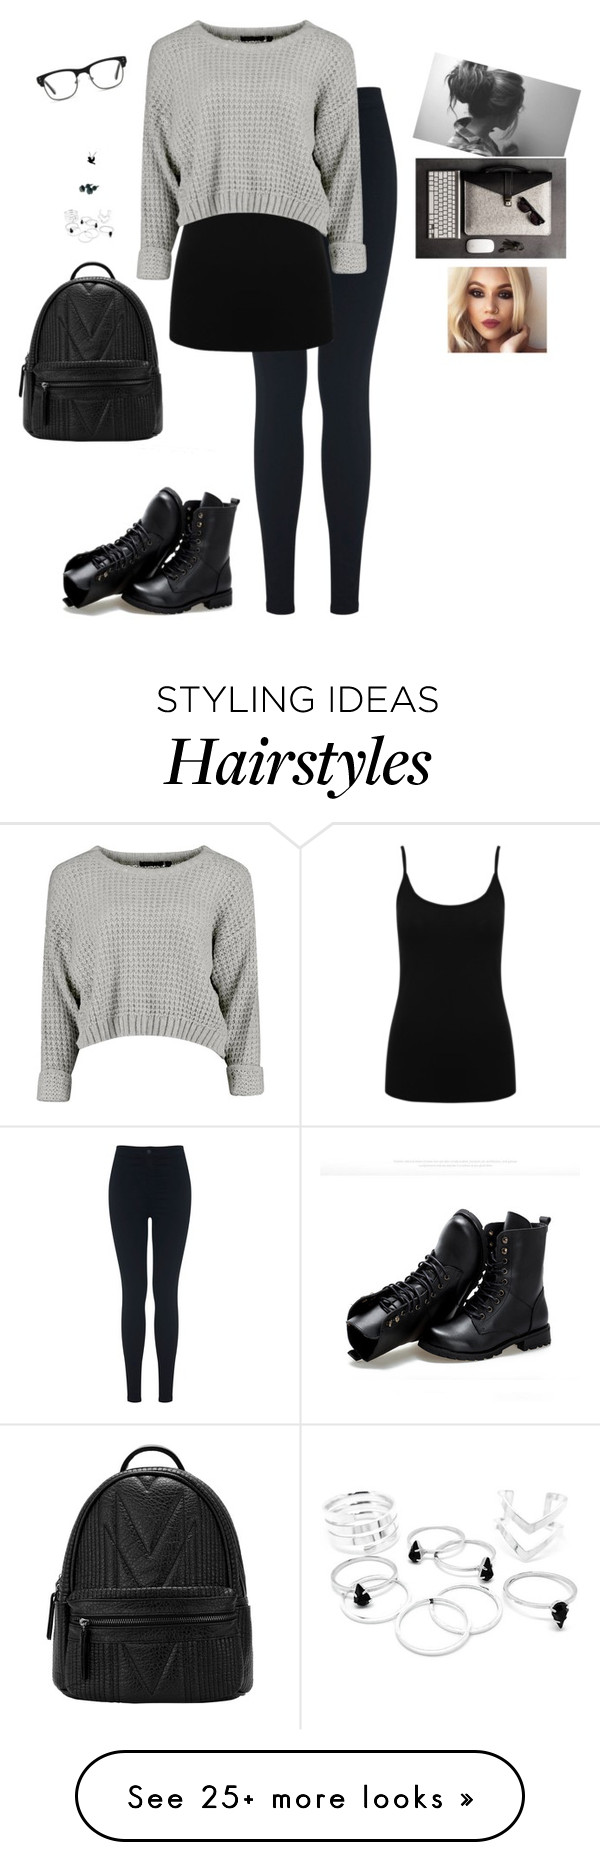 """""""Hard Worker"""" by hanakdudley on Polyvore featuring Miss Selfridge, M&Co, GlassesUSA and Sunsteps"""